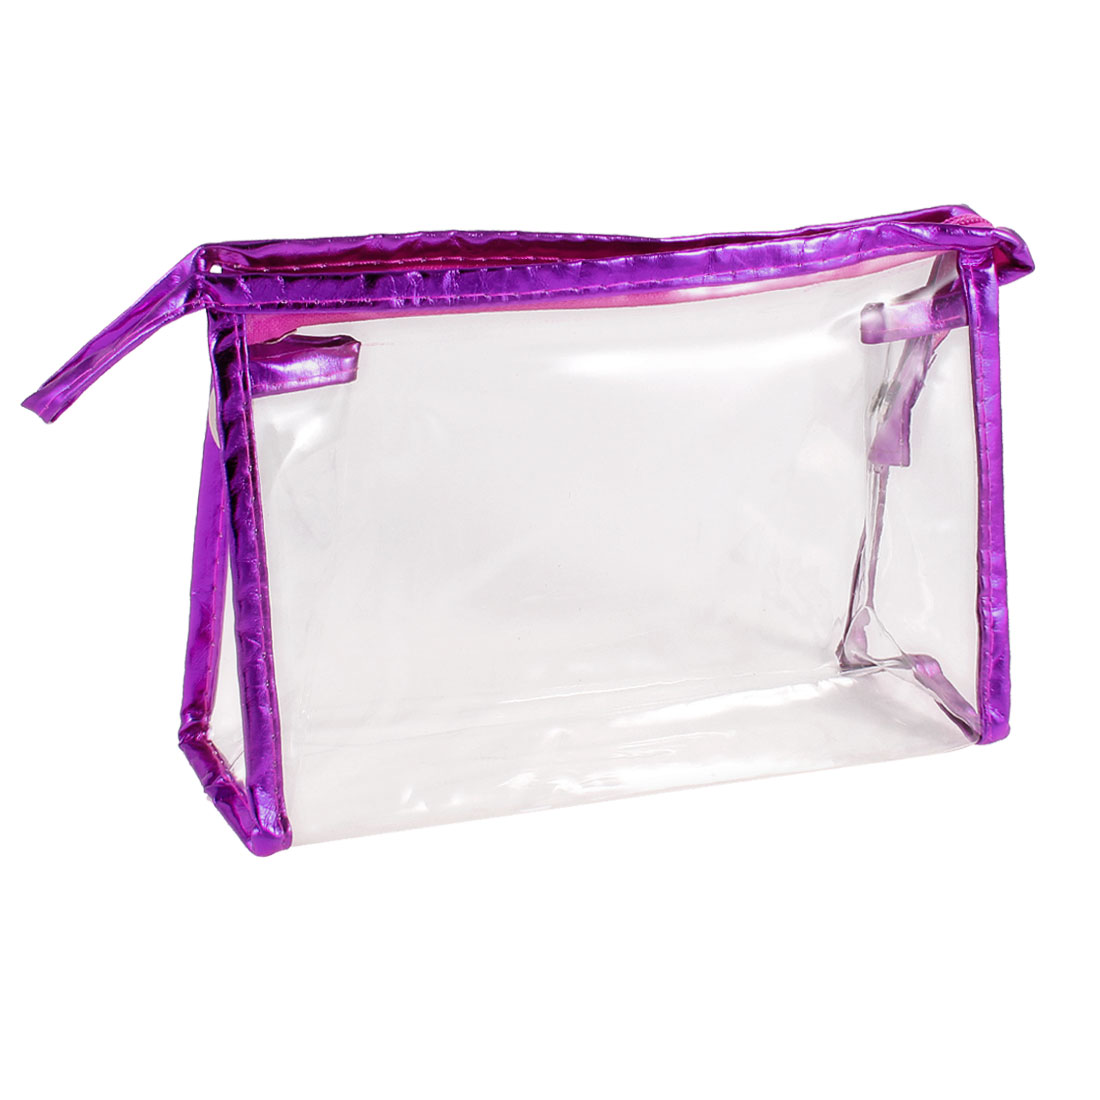 Portable Purple Faux Leather Frame Transparent Make up Holder Bag 21.5cmx6.5cmx13cm